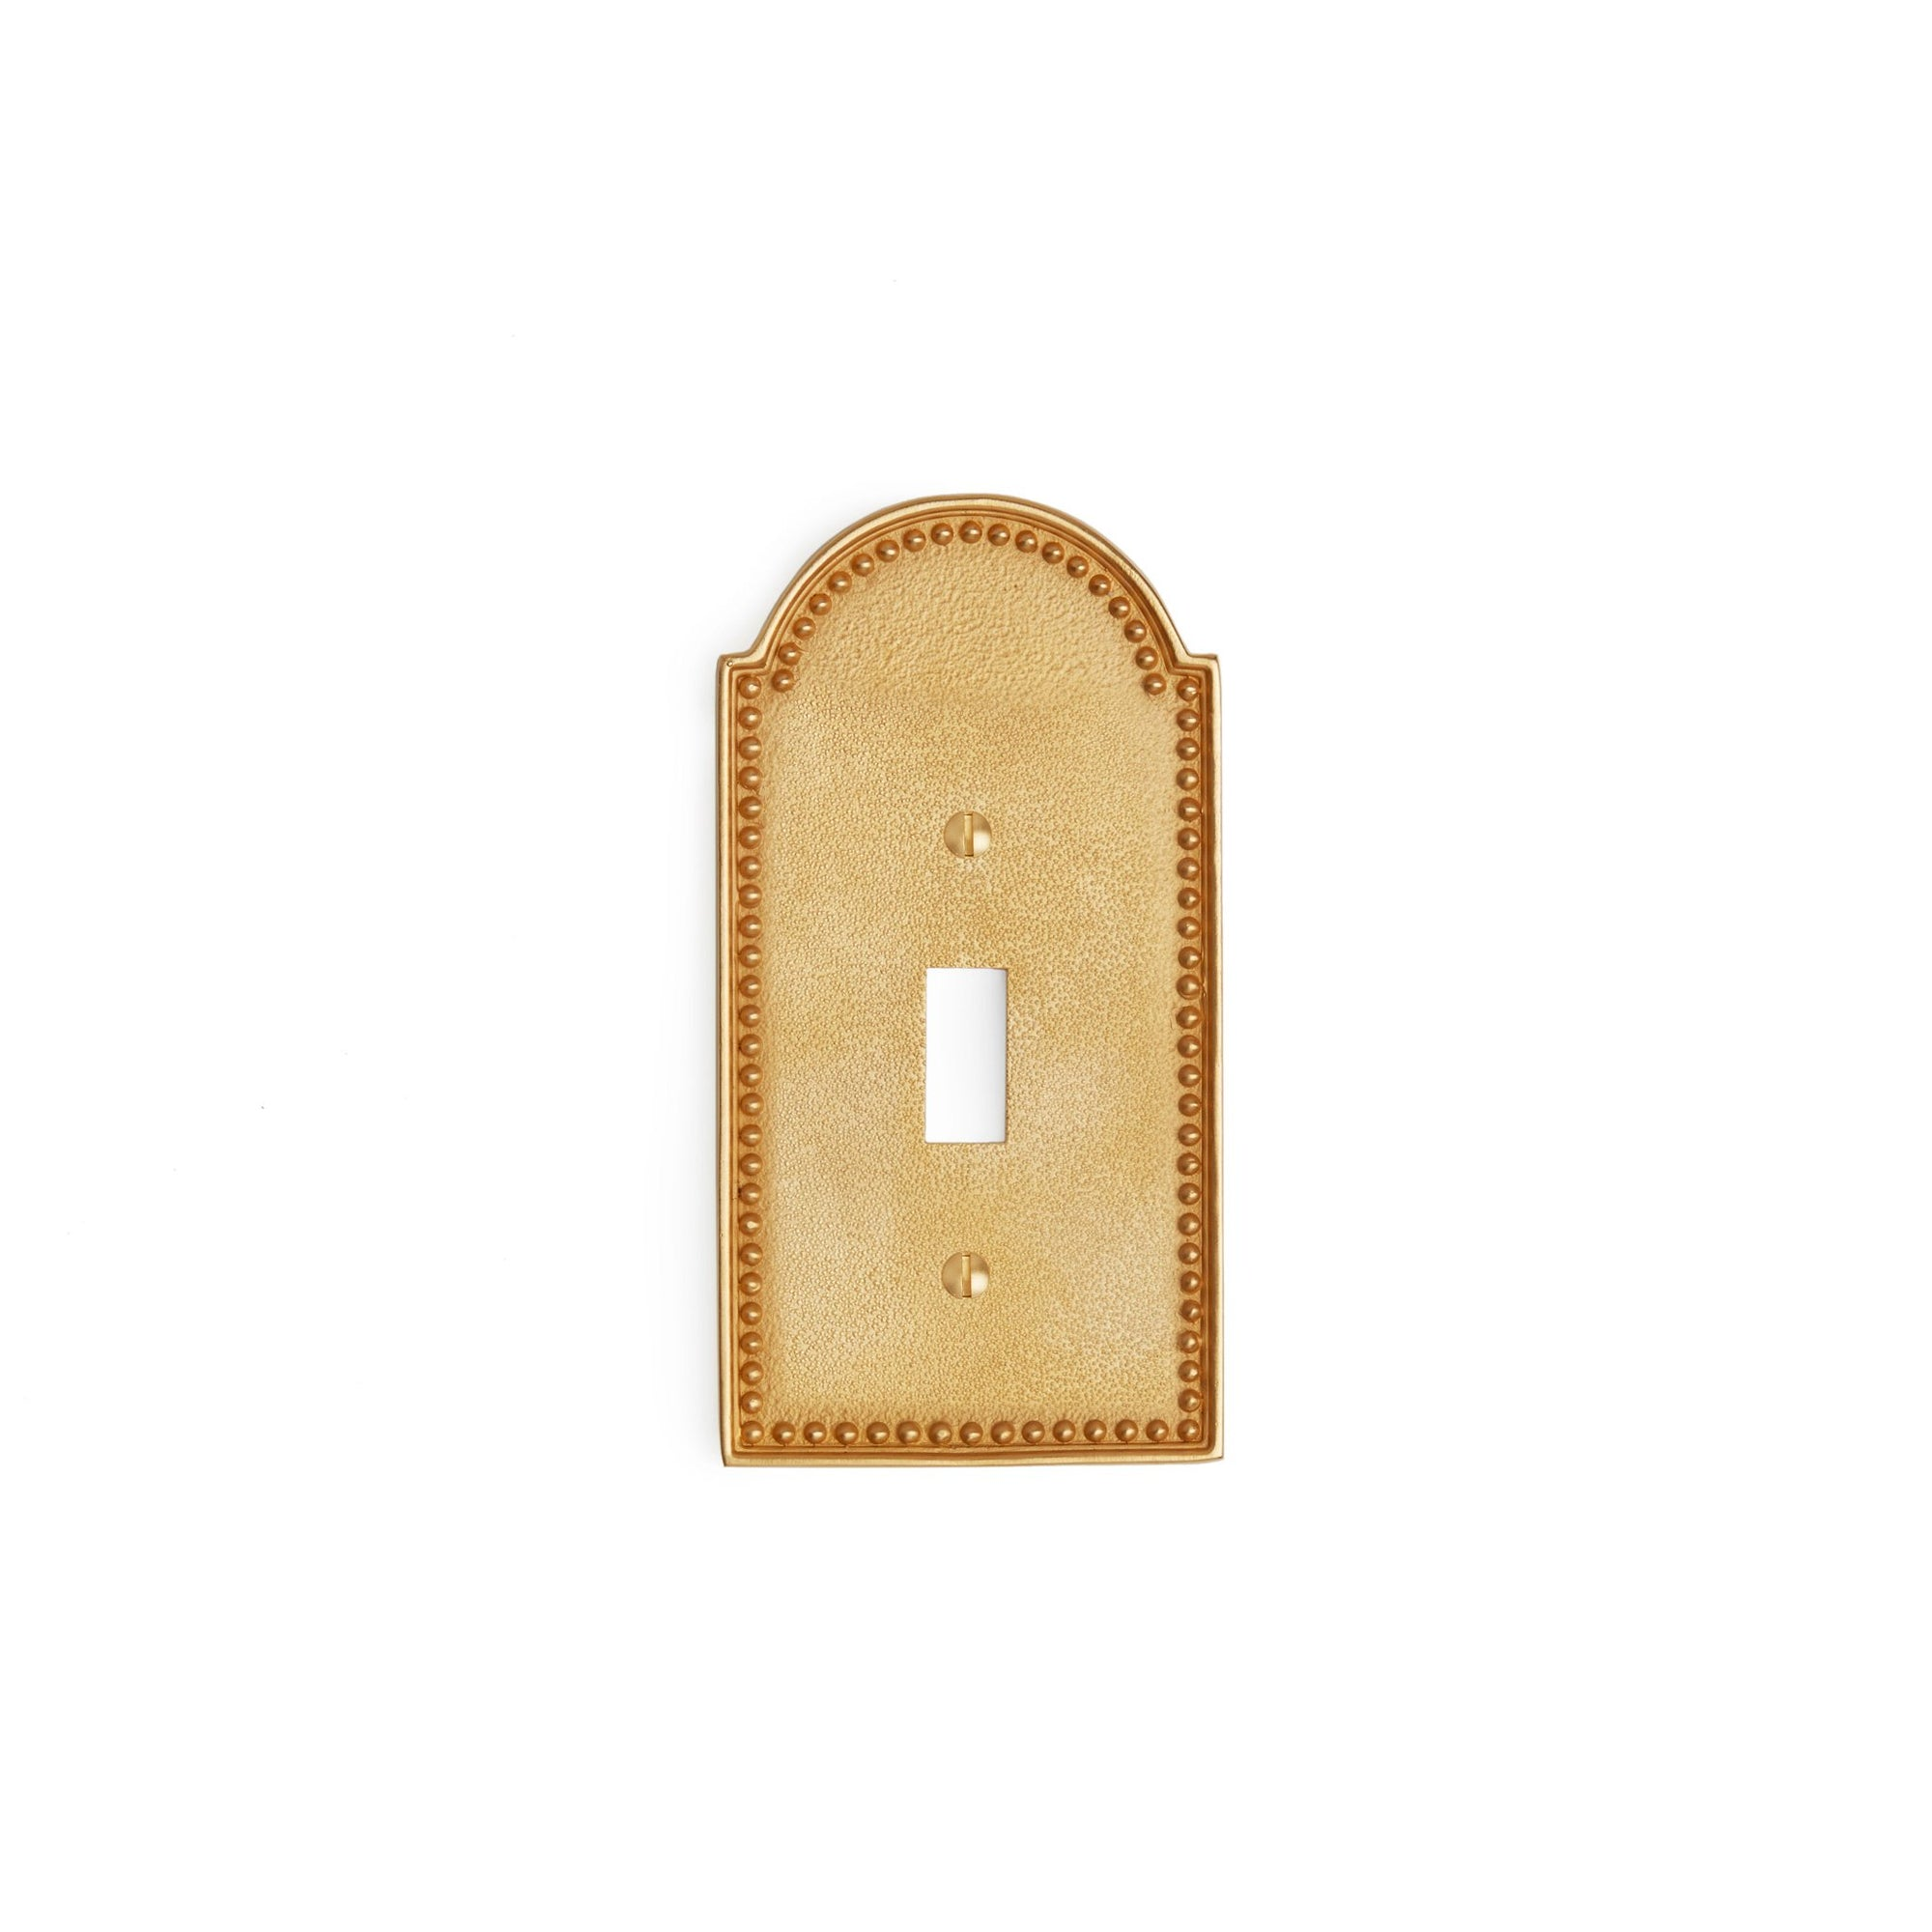 0464-SWT-GP Sherle Wagner International Beaded Single Switch Plate in Gold Plate metal finish